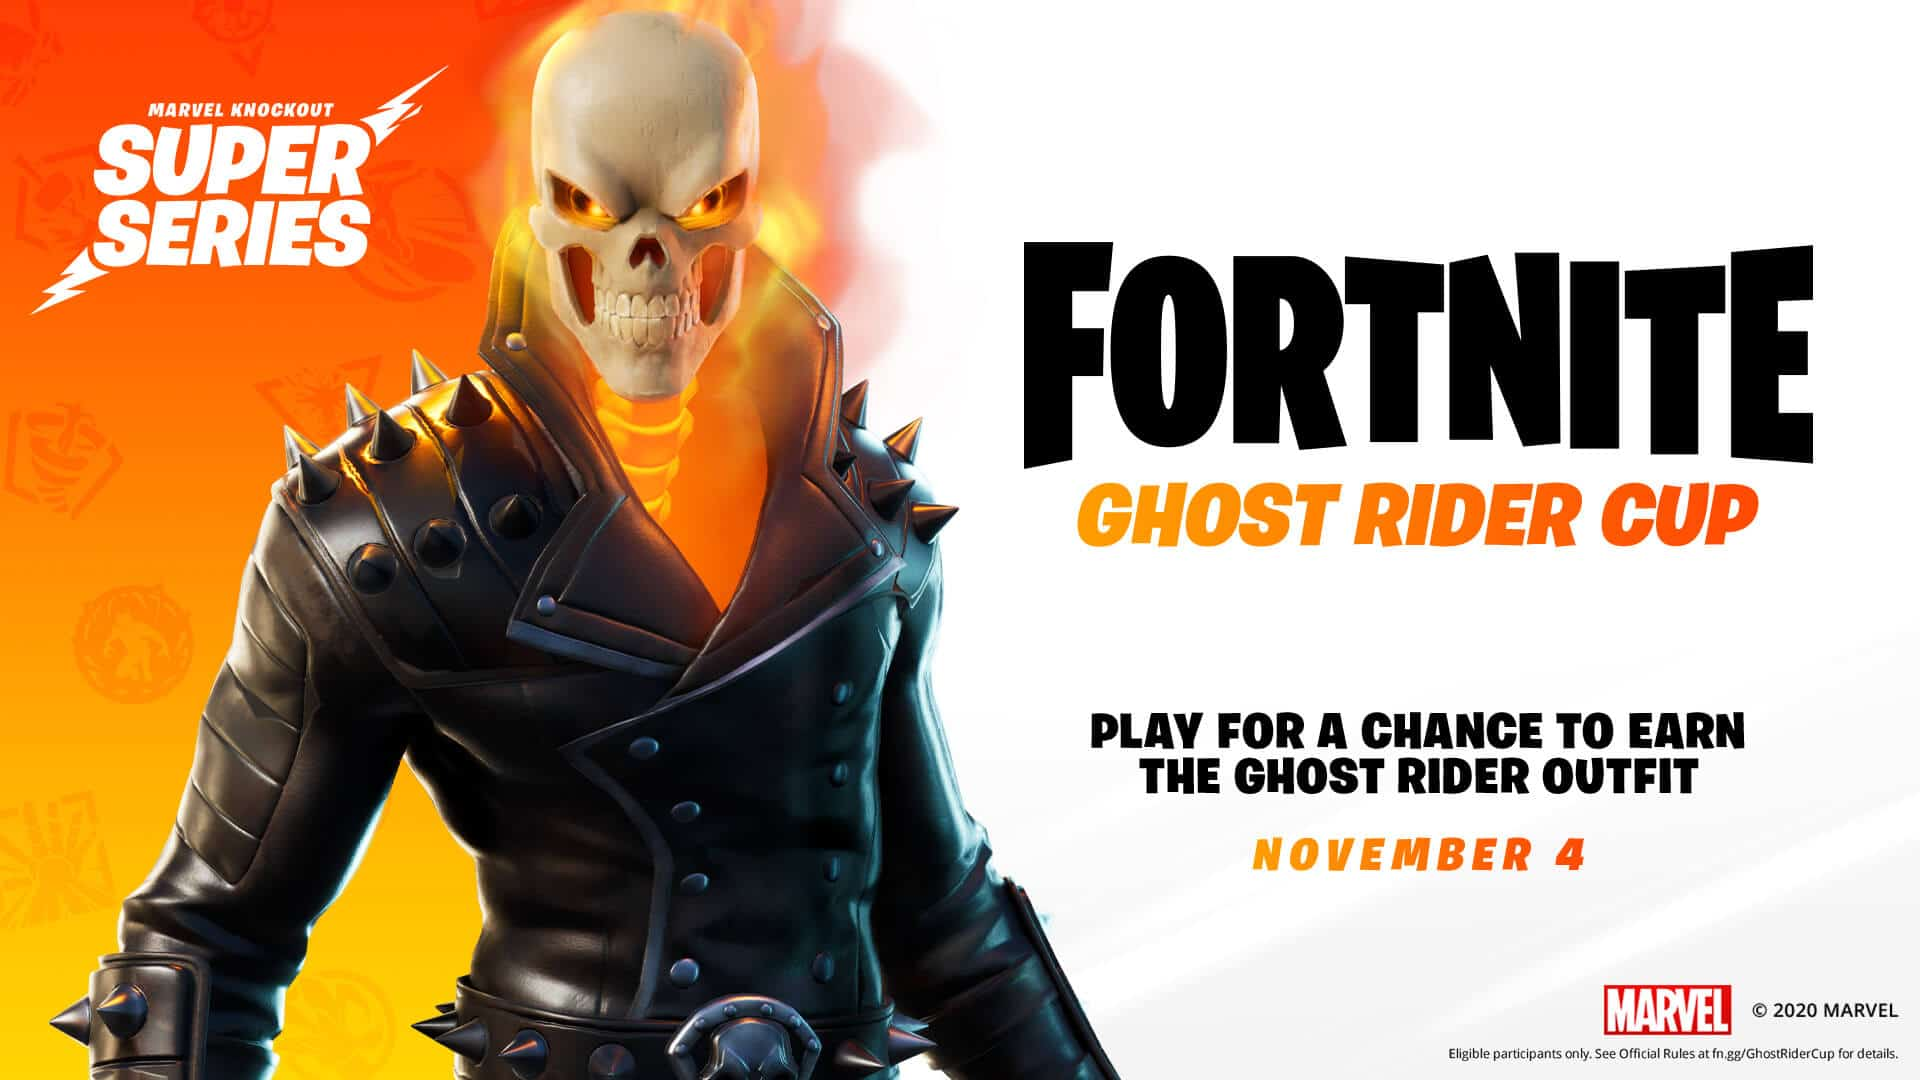 Ghost Rider Fortnite Cup